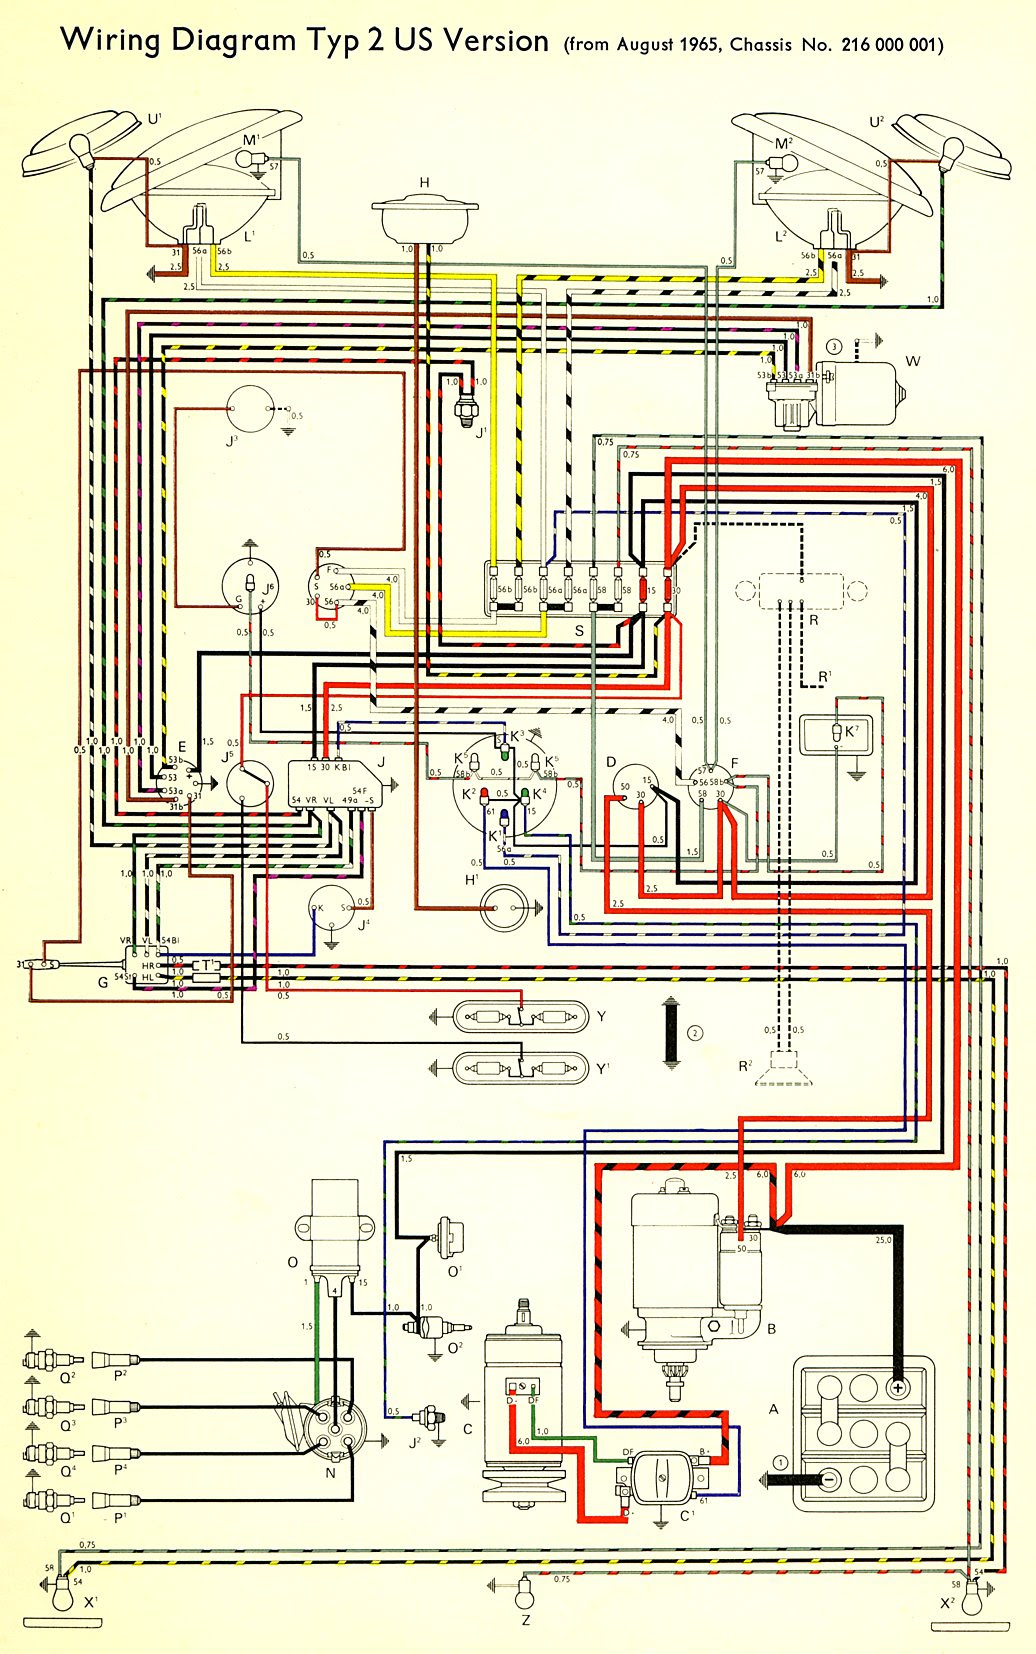 1959 Chevy Bus Wiring Diagram Wiring Diagram Overview A Overview A Musikami It